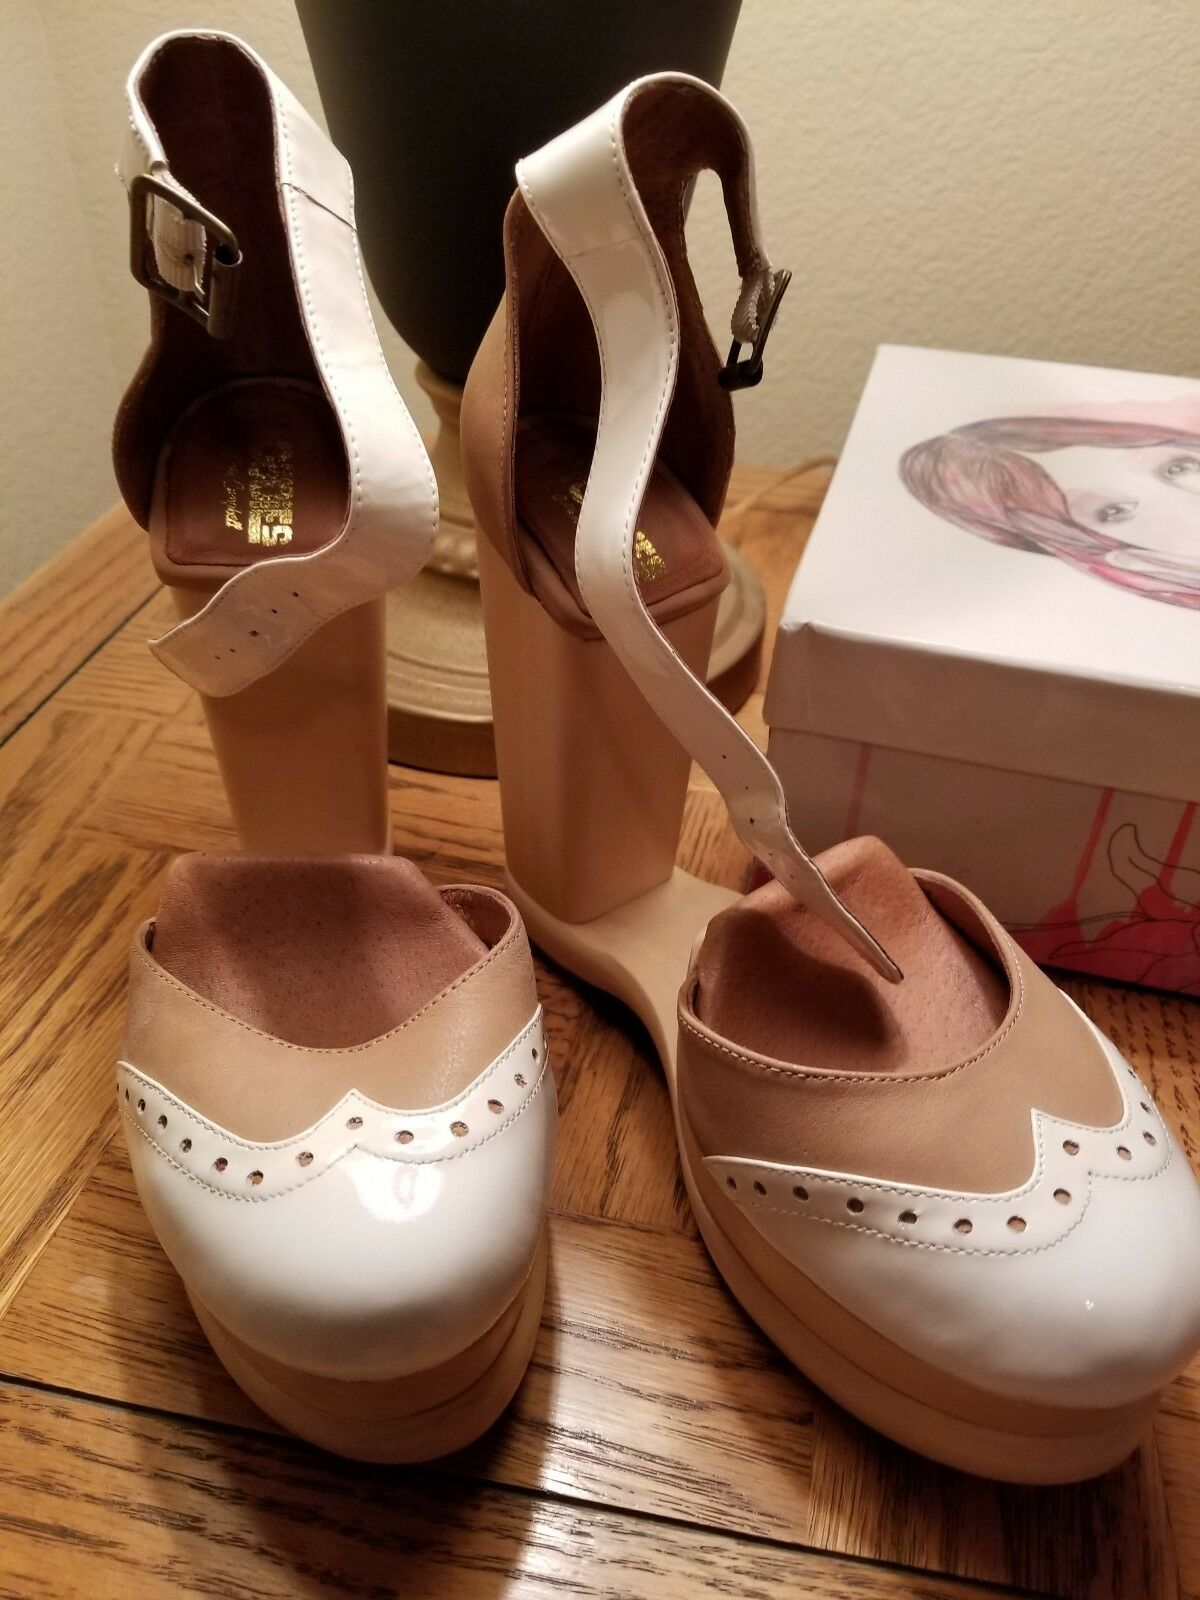 Jeffrey campbell NEW Bus Stop Size 8 archless wood heels